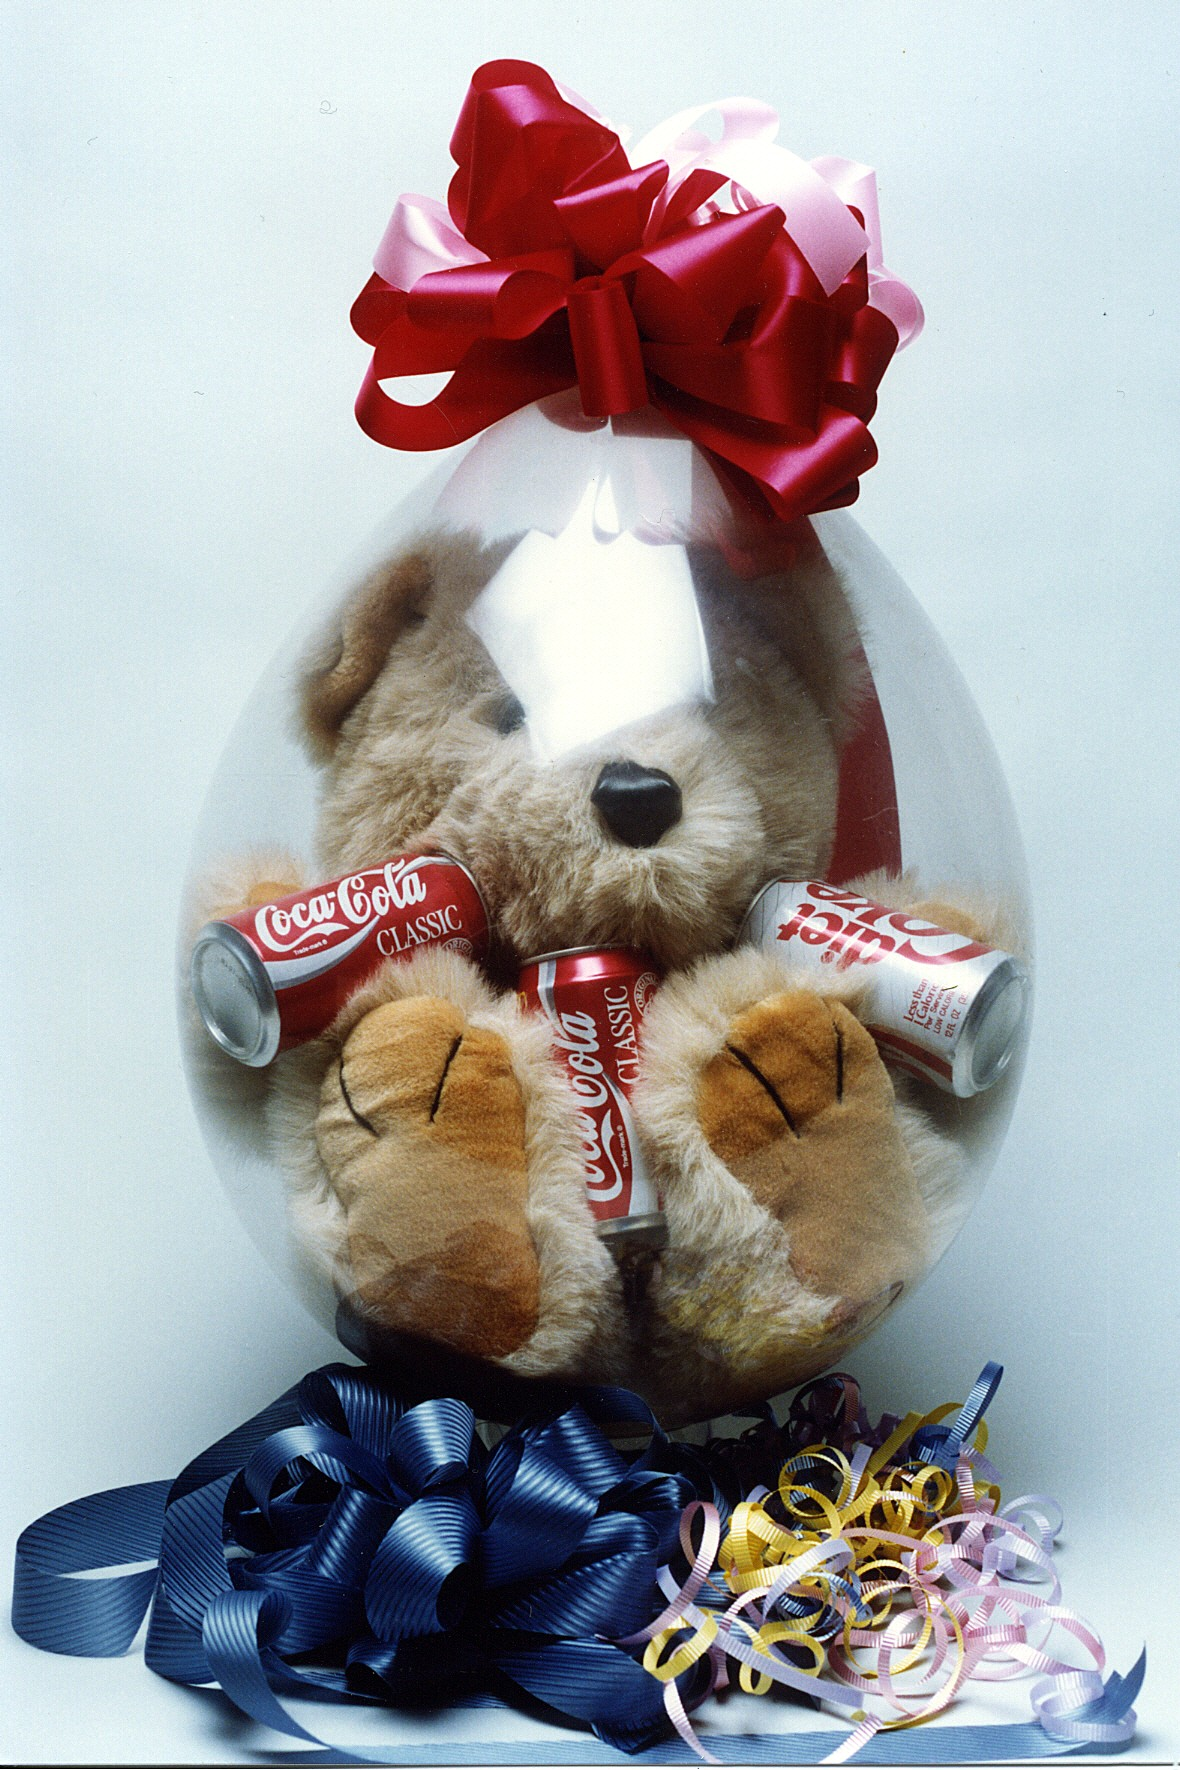 18-inch-qualate-stuffing-balloon-bear.jpg